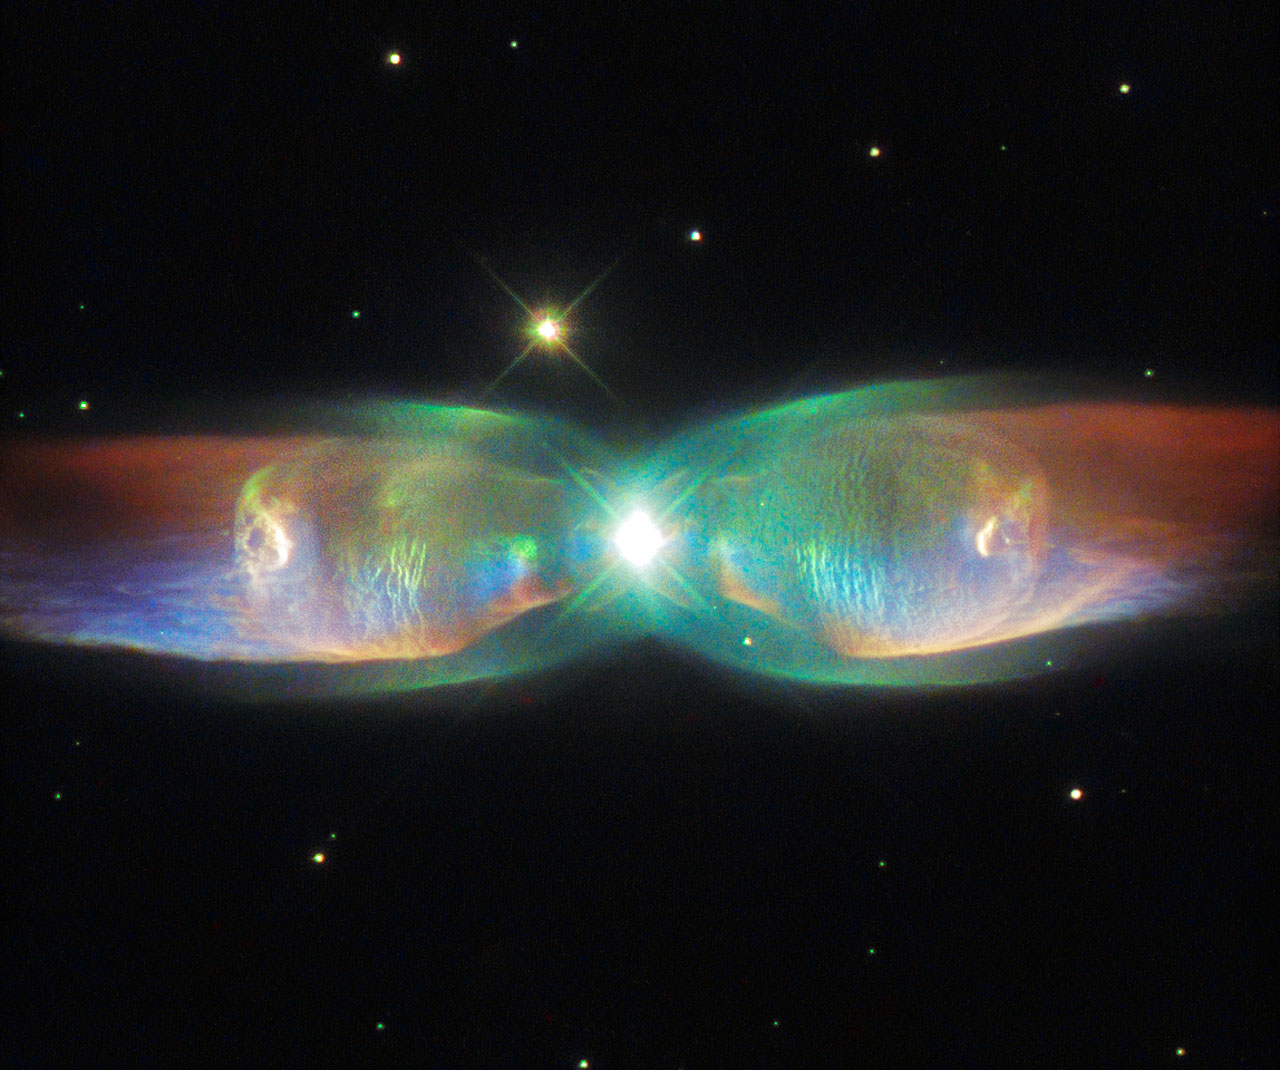 The Butterfly Nebula, also known as the Twin Jet Nebula, is an example of a so-called bipolar planetary nebula. The object of this study, K4-47, is much less known, but may be similar in appearance. Having nothing to do with planets, a planetary nebula is